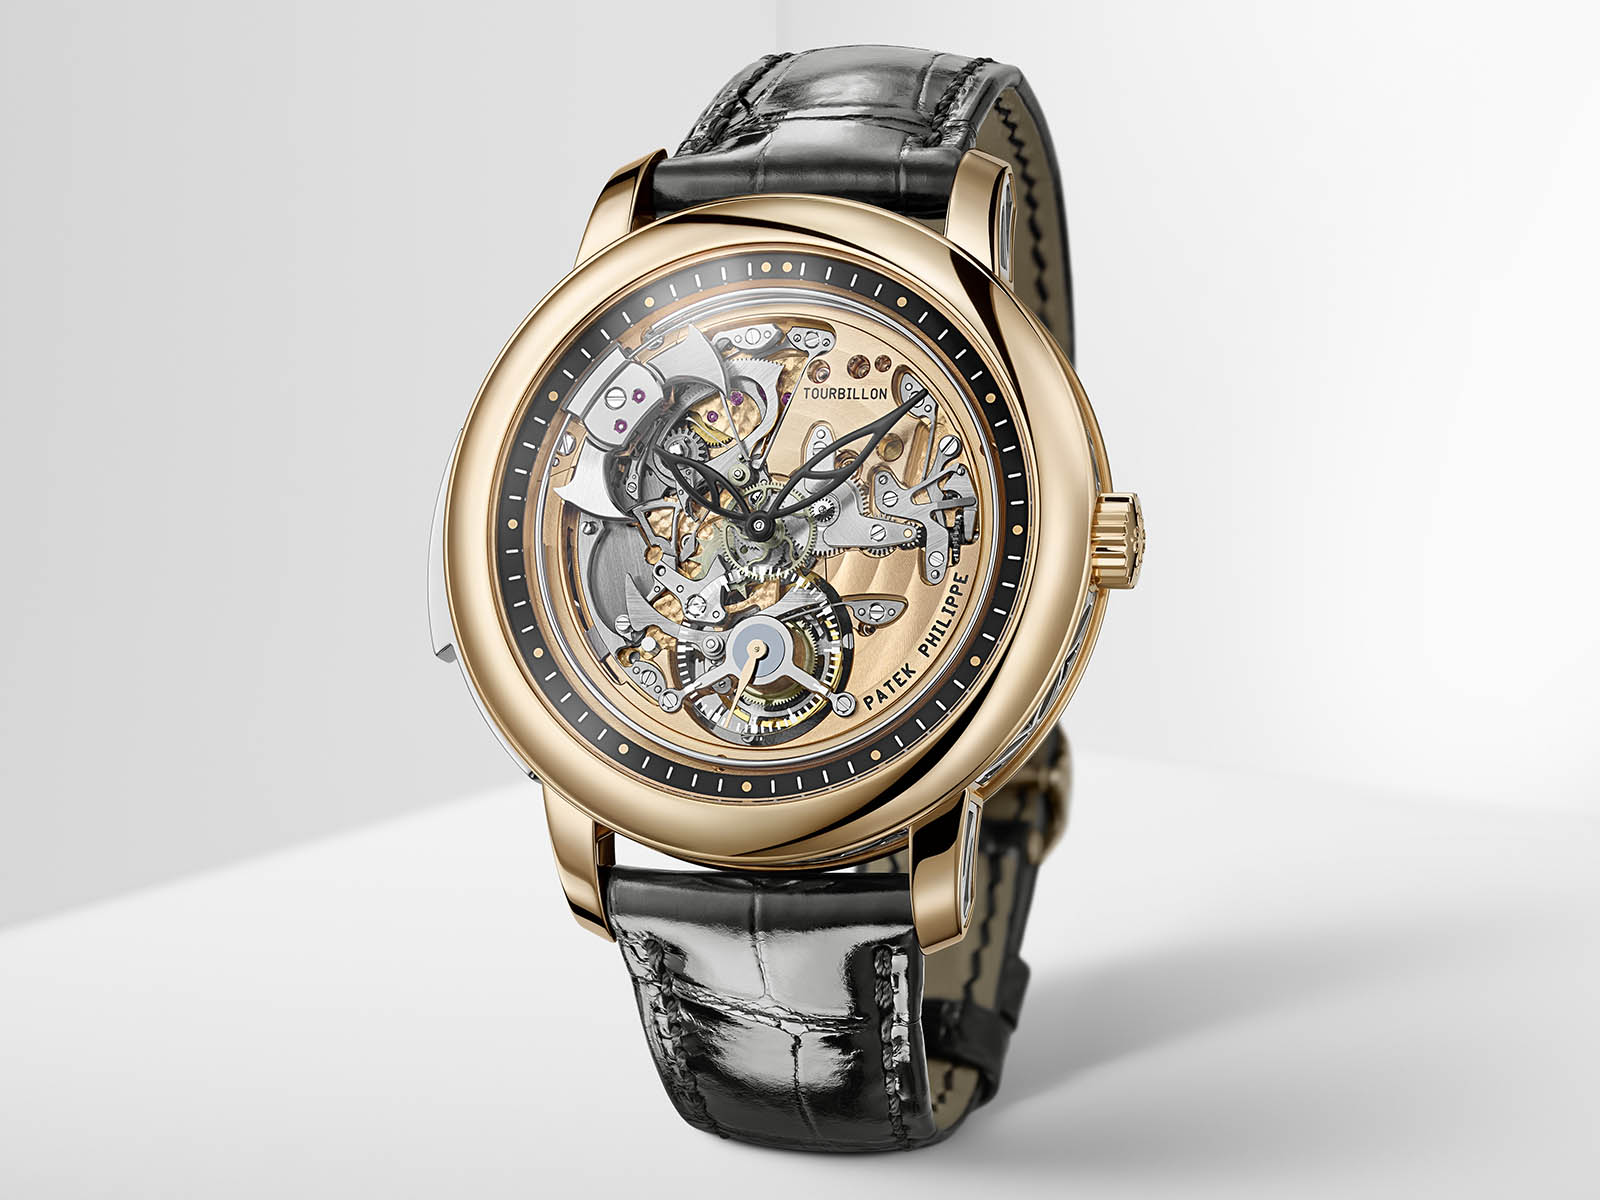 5303r-001-patek-philippe-5303r-minute-repeater-tourbillon-2.jpg